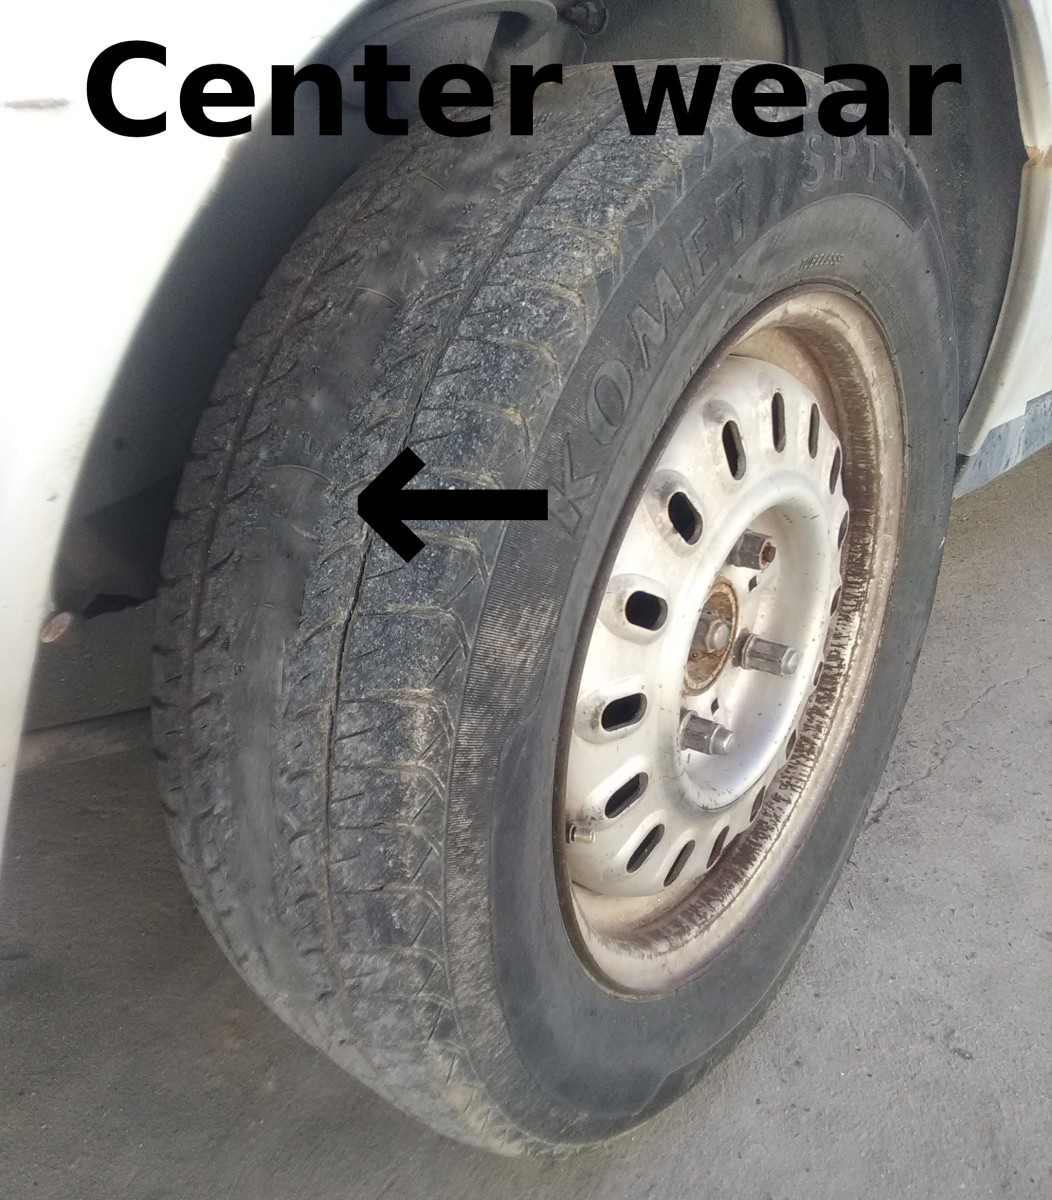 A car tire with a worn center tread is usually caused by overinflation pressure.